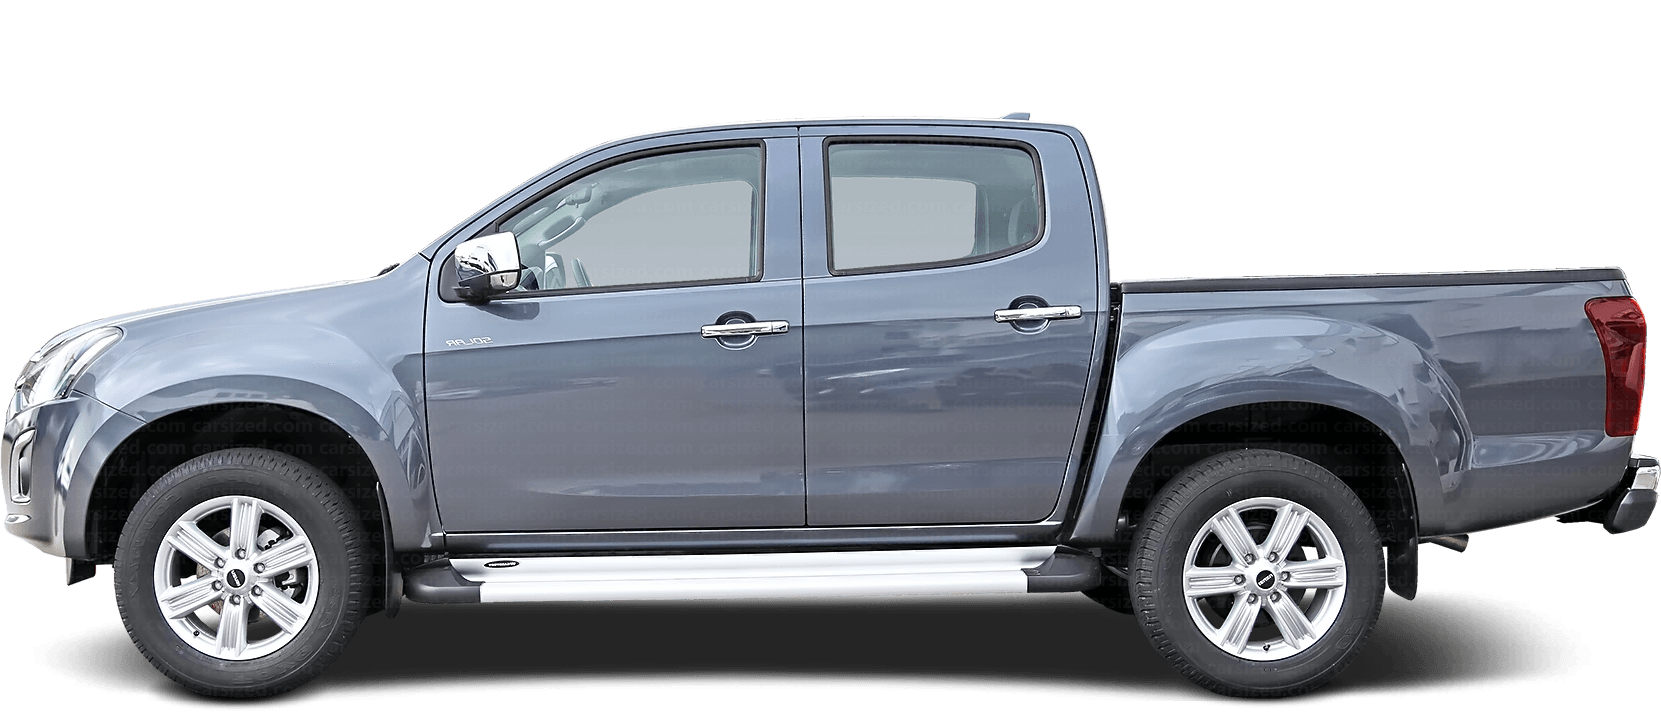 Isuzu D-Max Pick-up 2012-heute